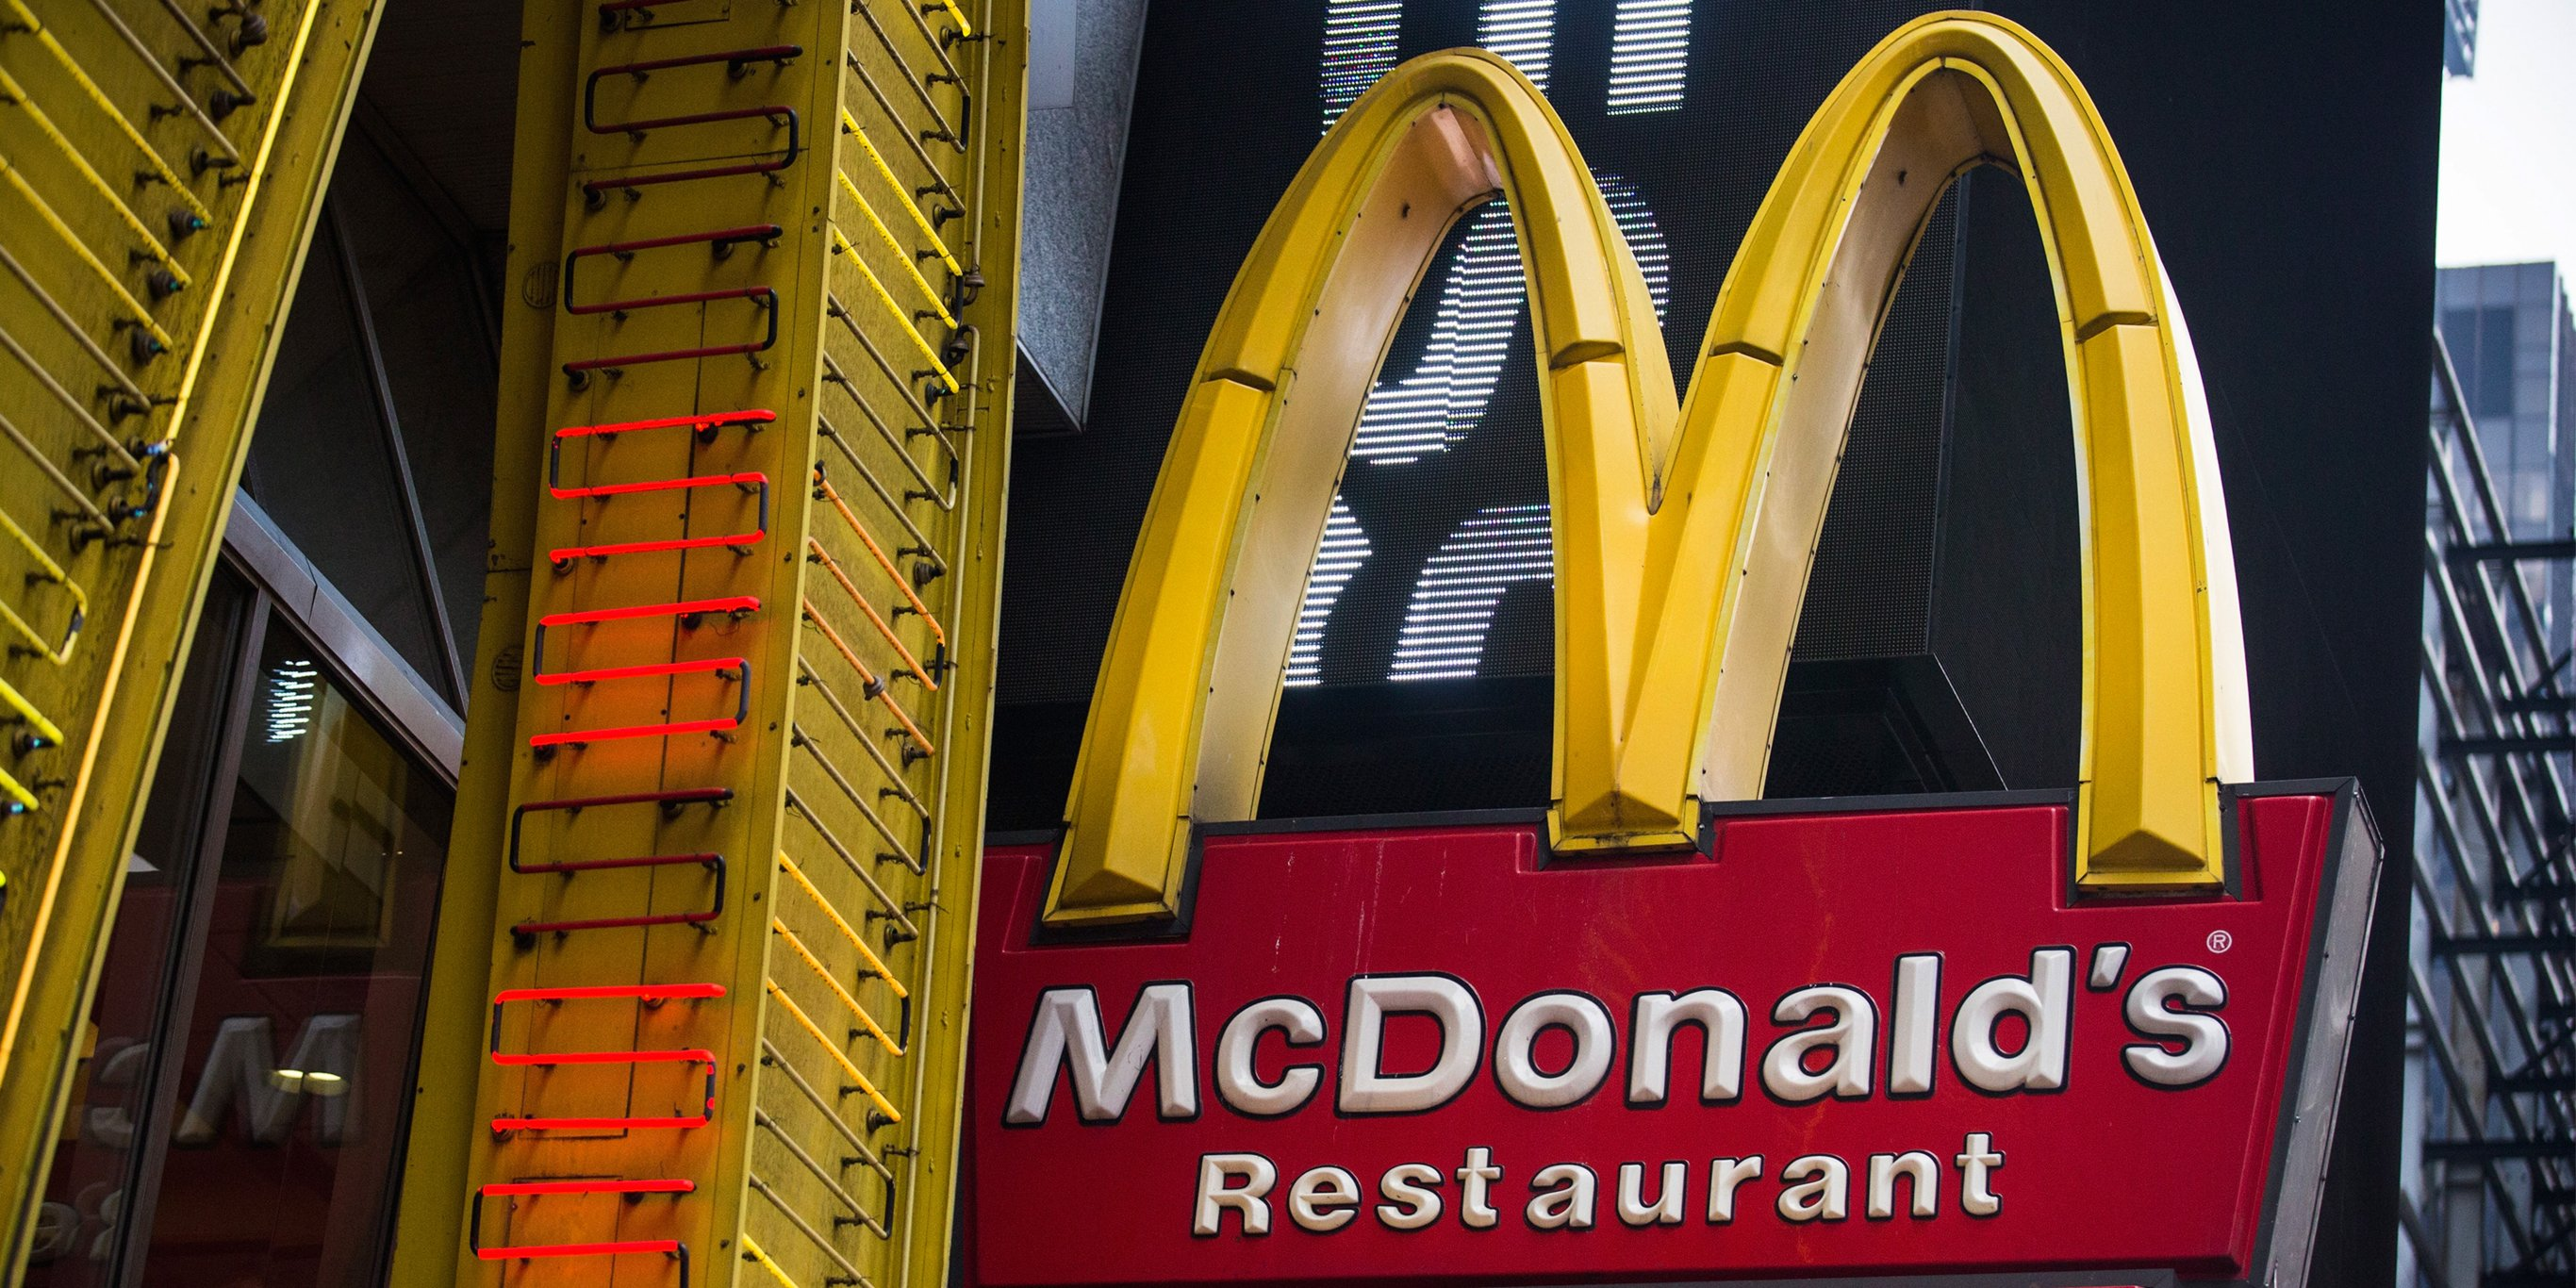 Advertisers have long avoided sharing agencies with competitors. McDonald's just abandoned that tradition, and other big brands could follow suit.